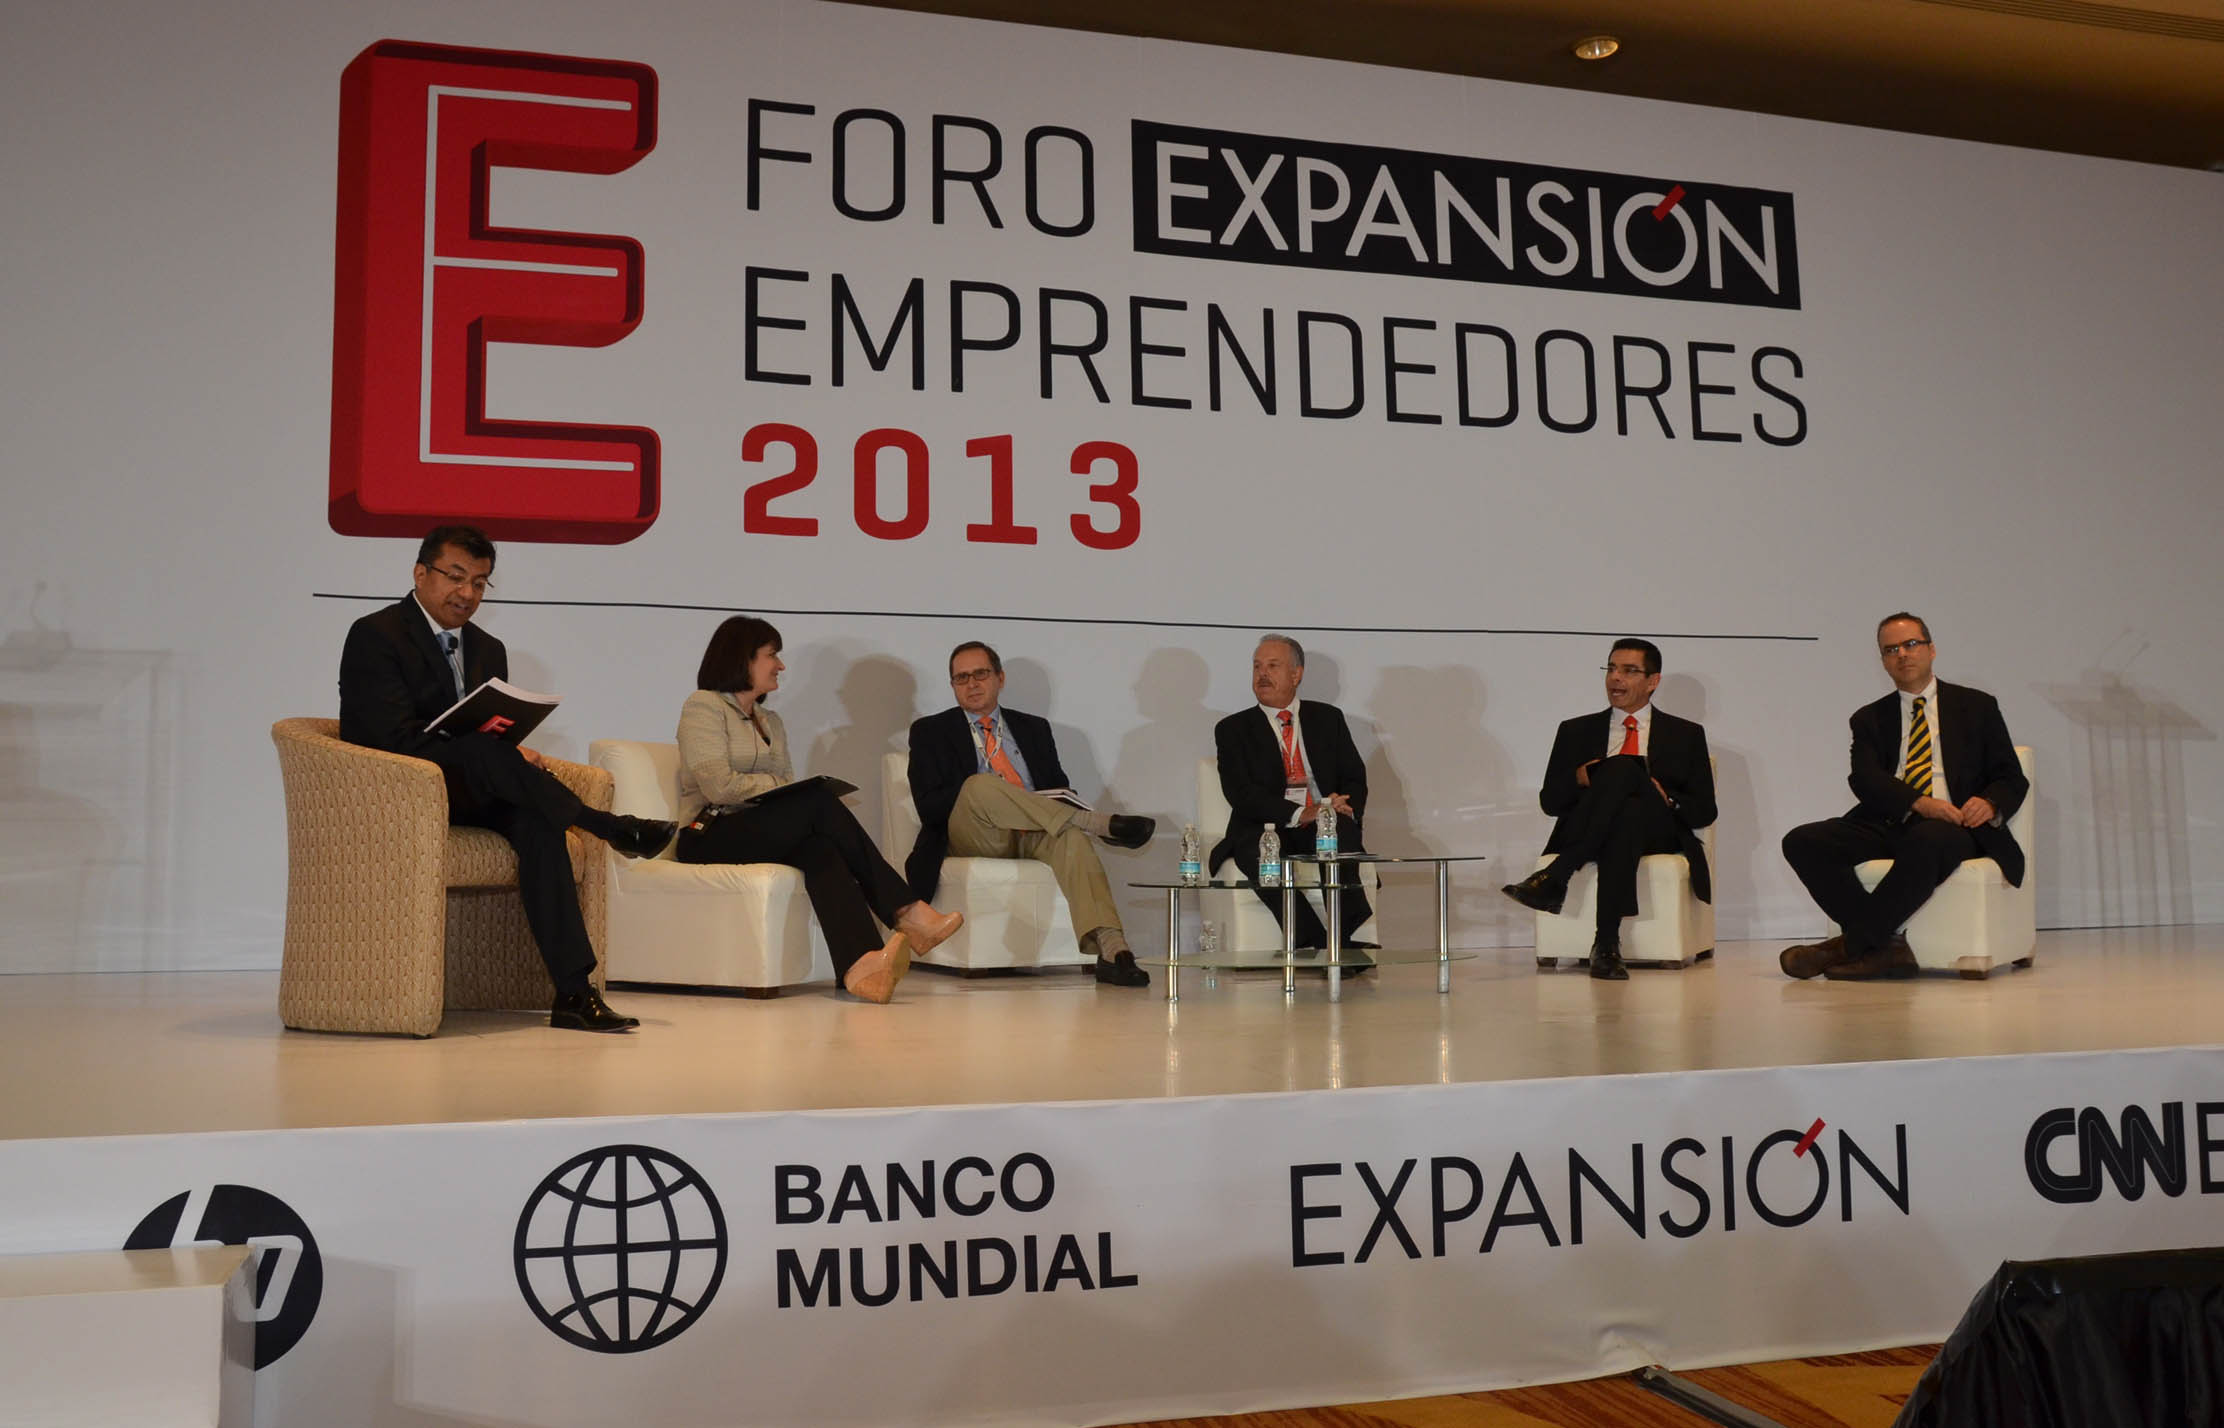 Foro emprendedores expansin 11